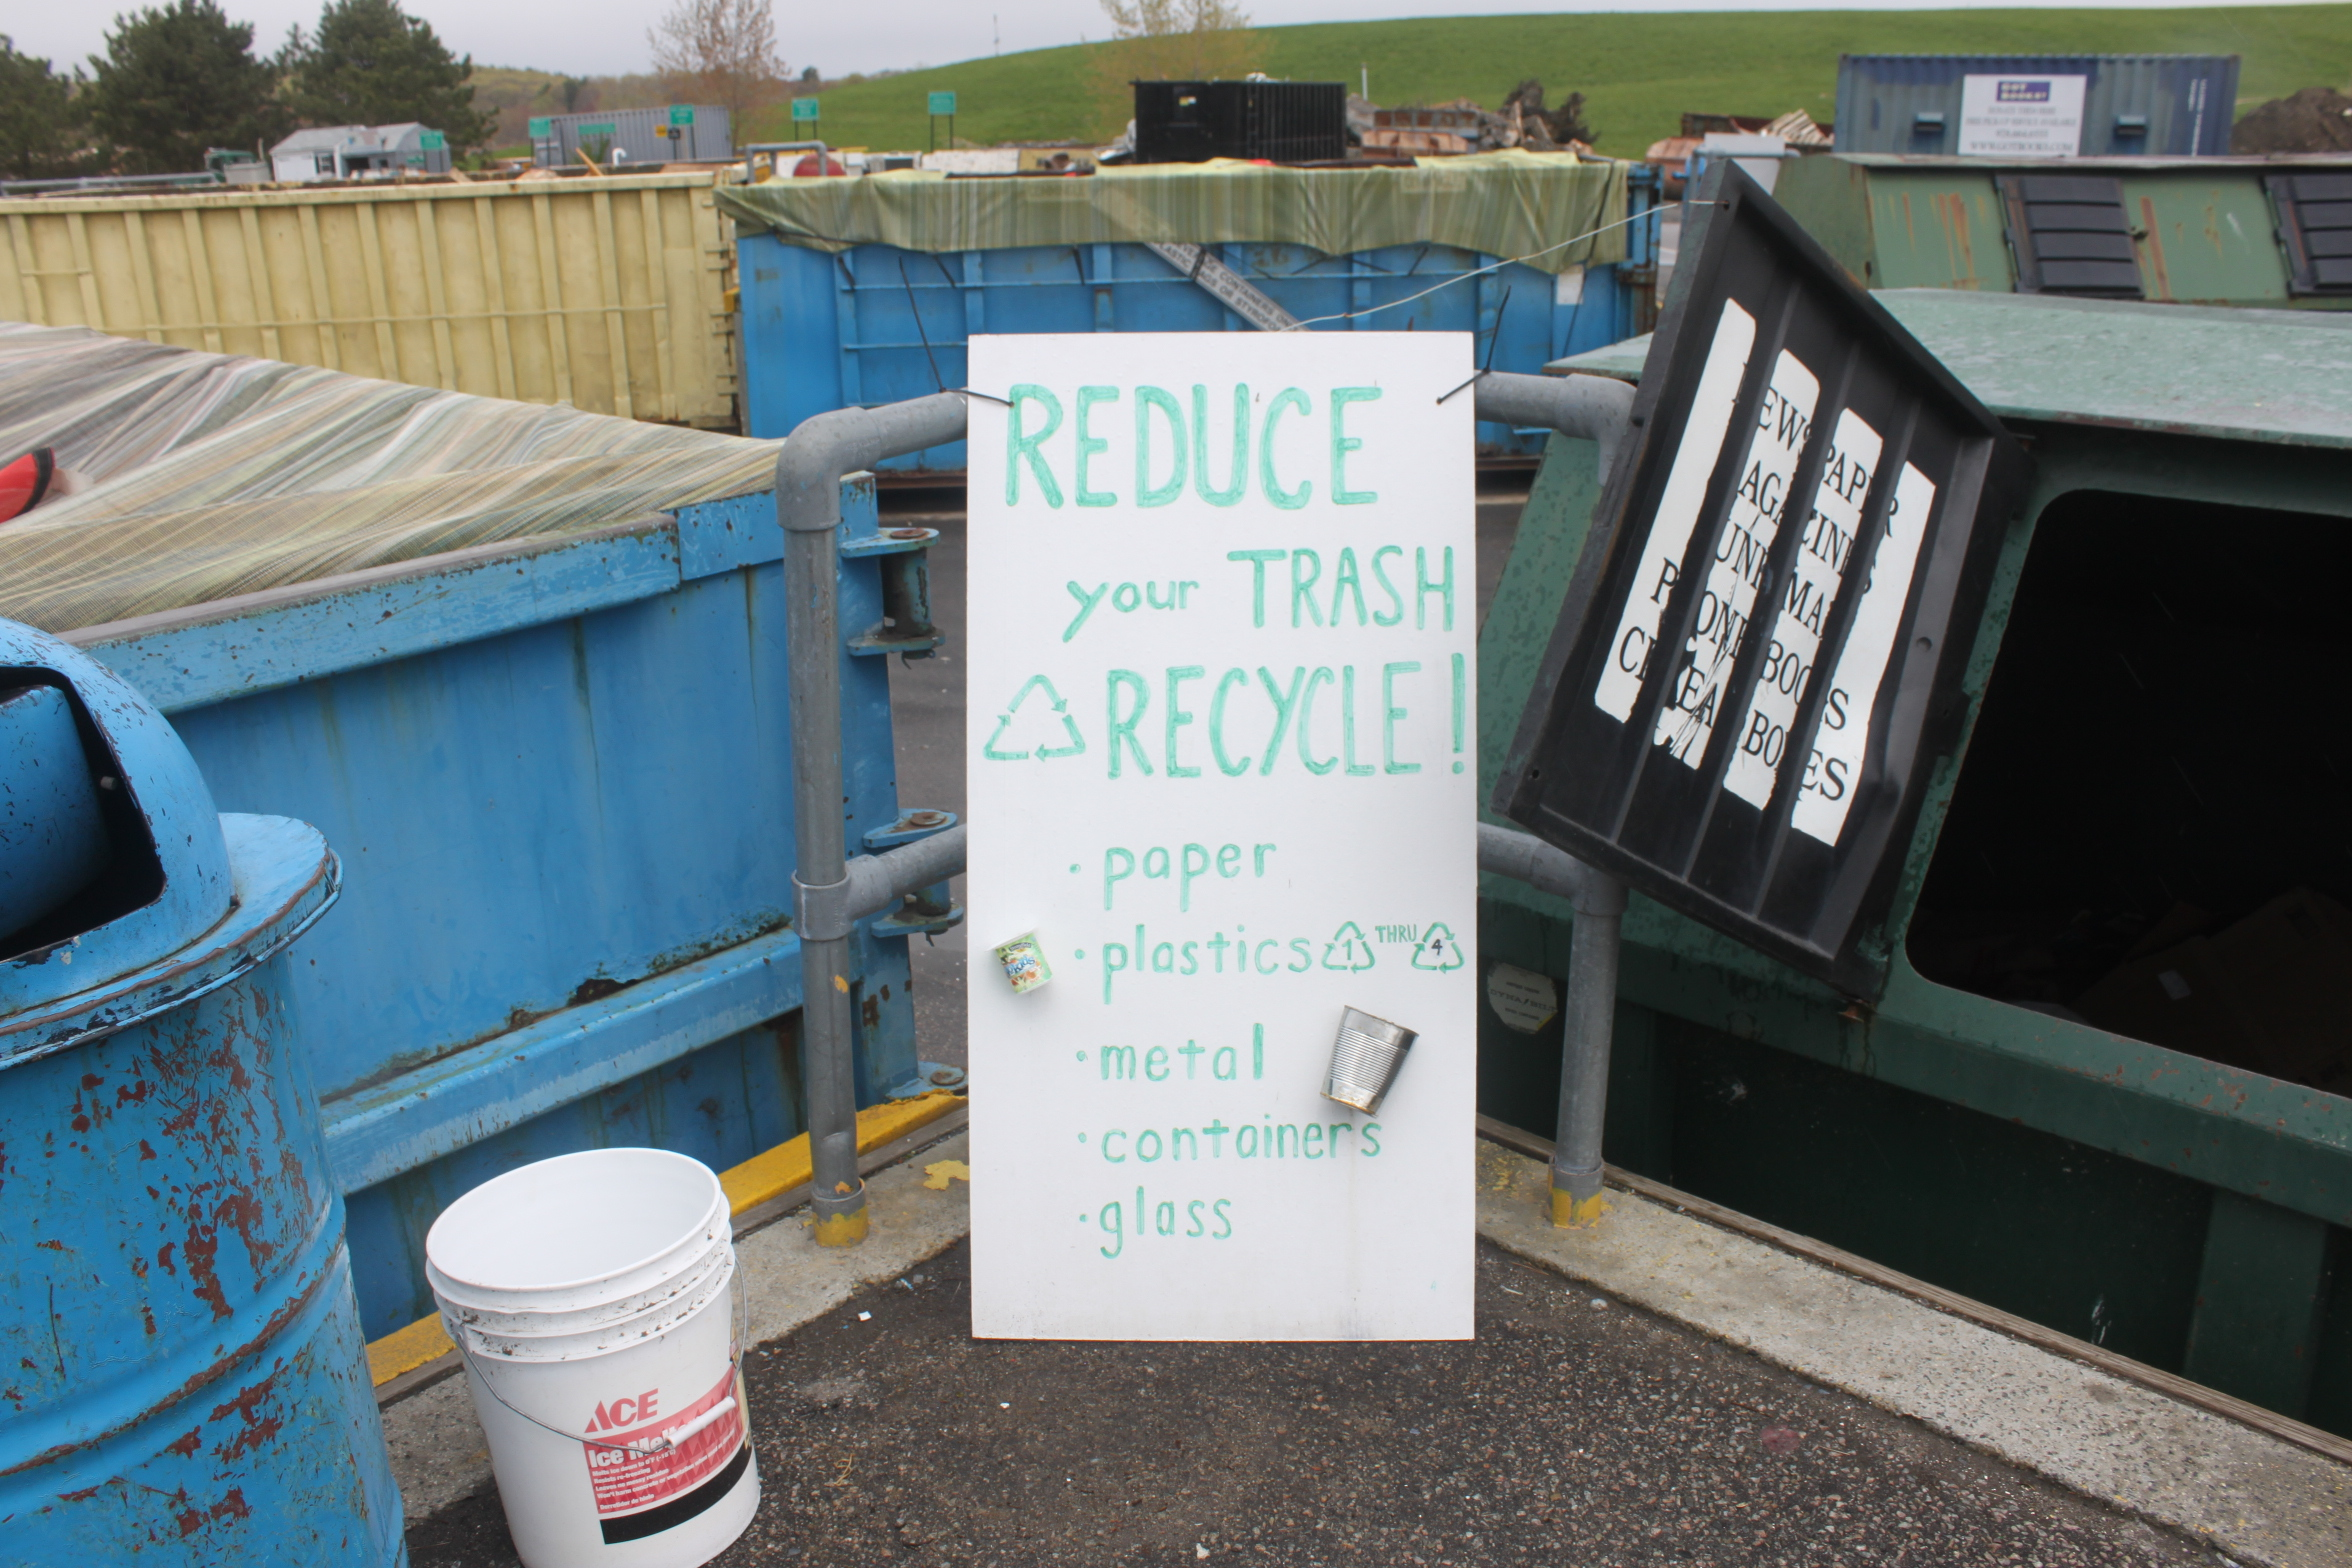 Top 10 Recycling Challenges at the Needham RTS